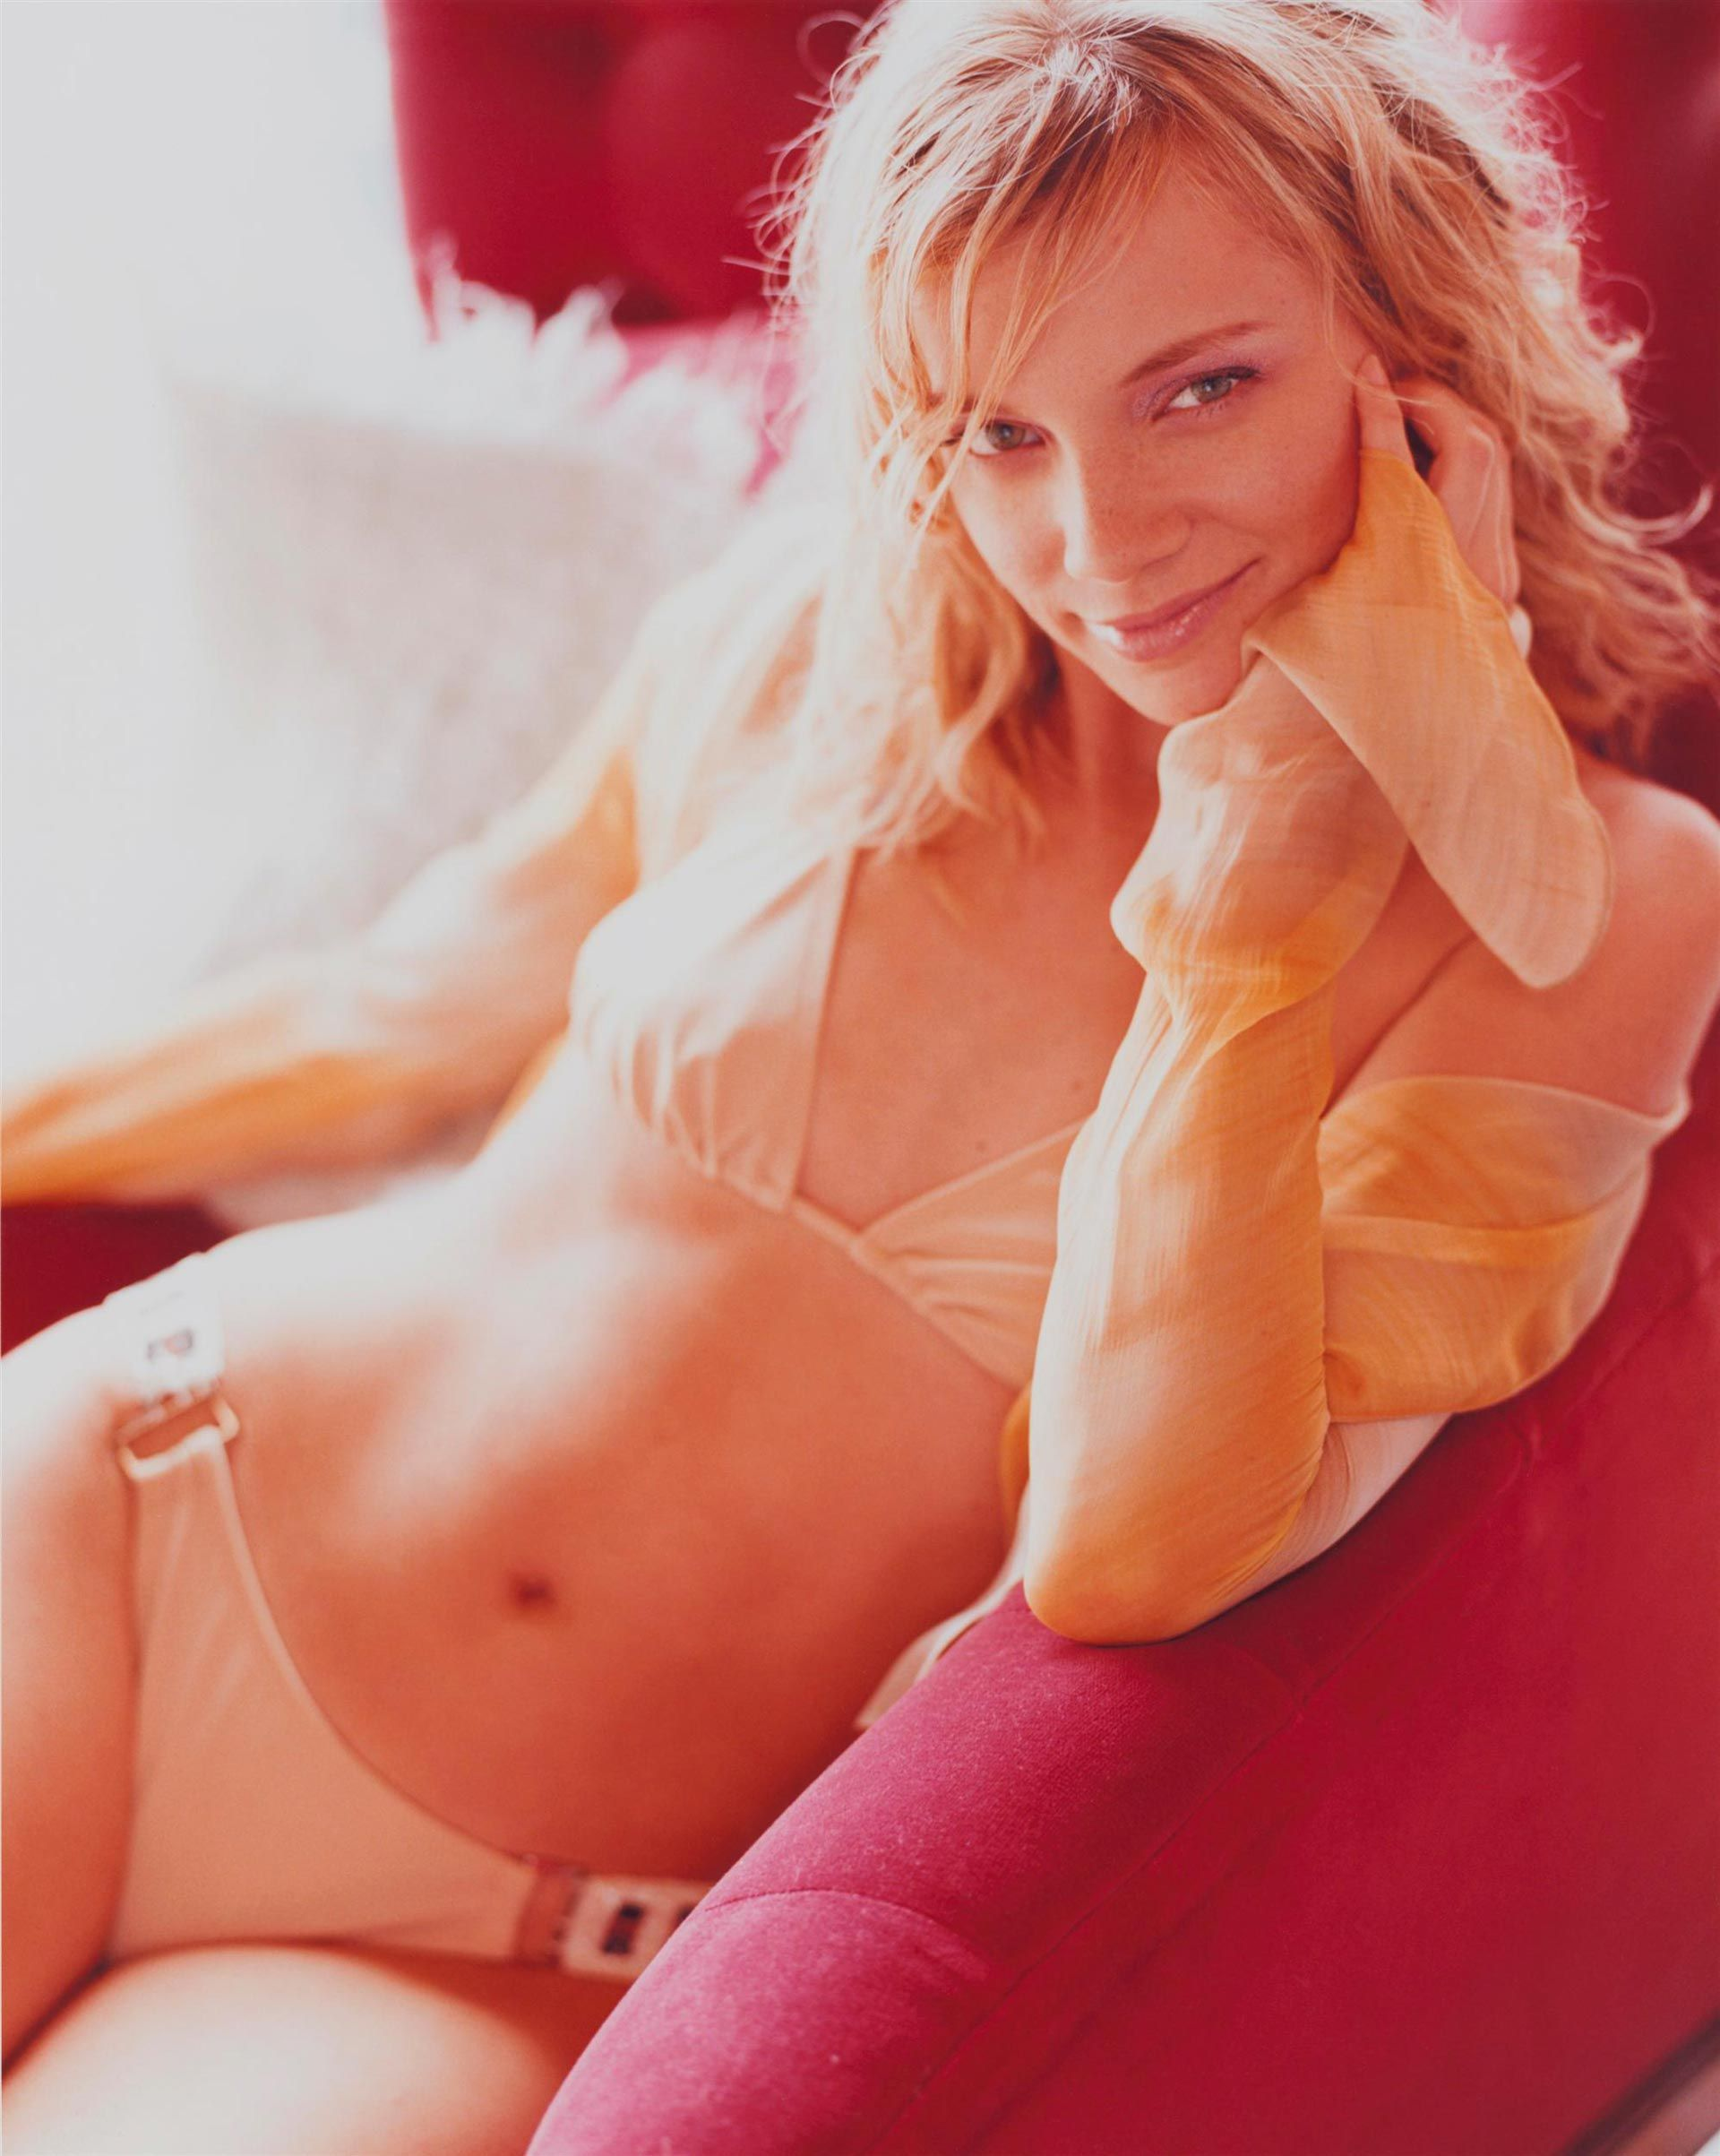 Erotica Amy Smart naked (57 foto and video), Tits, Leaked, Selfie, swimsuit 2020